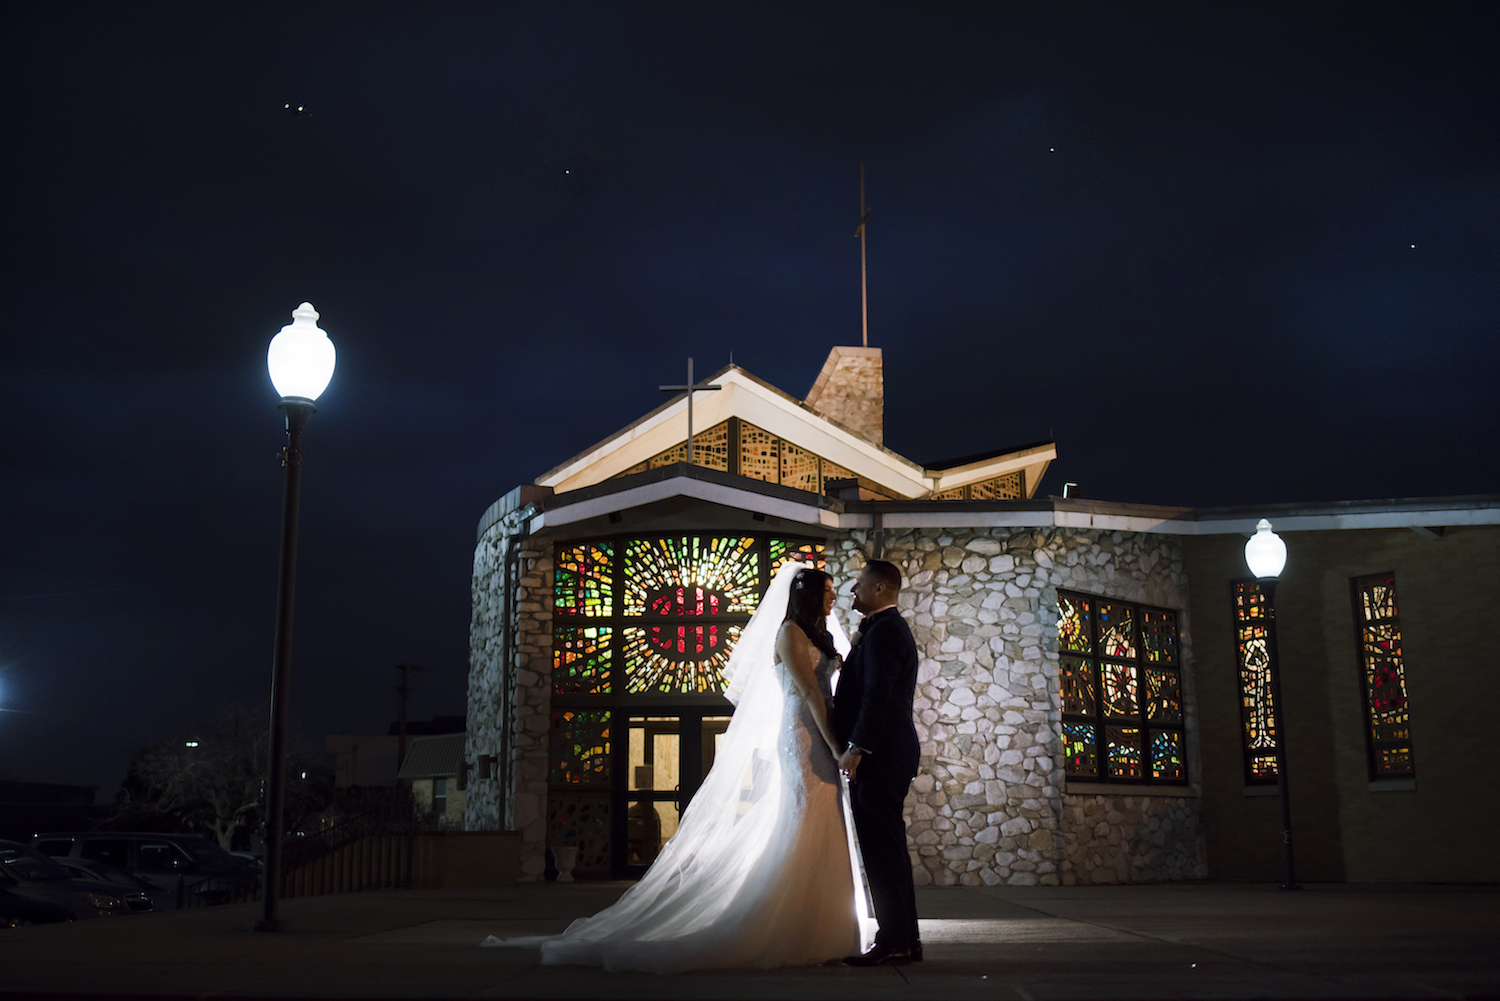 sylvia&alejandro-holding-hands-outside-night-lamp-post-wedding-photos-nj